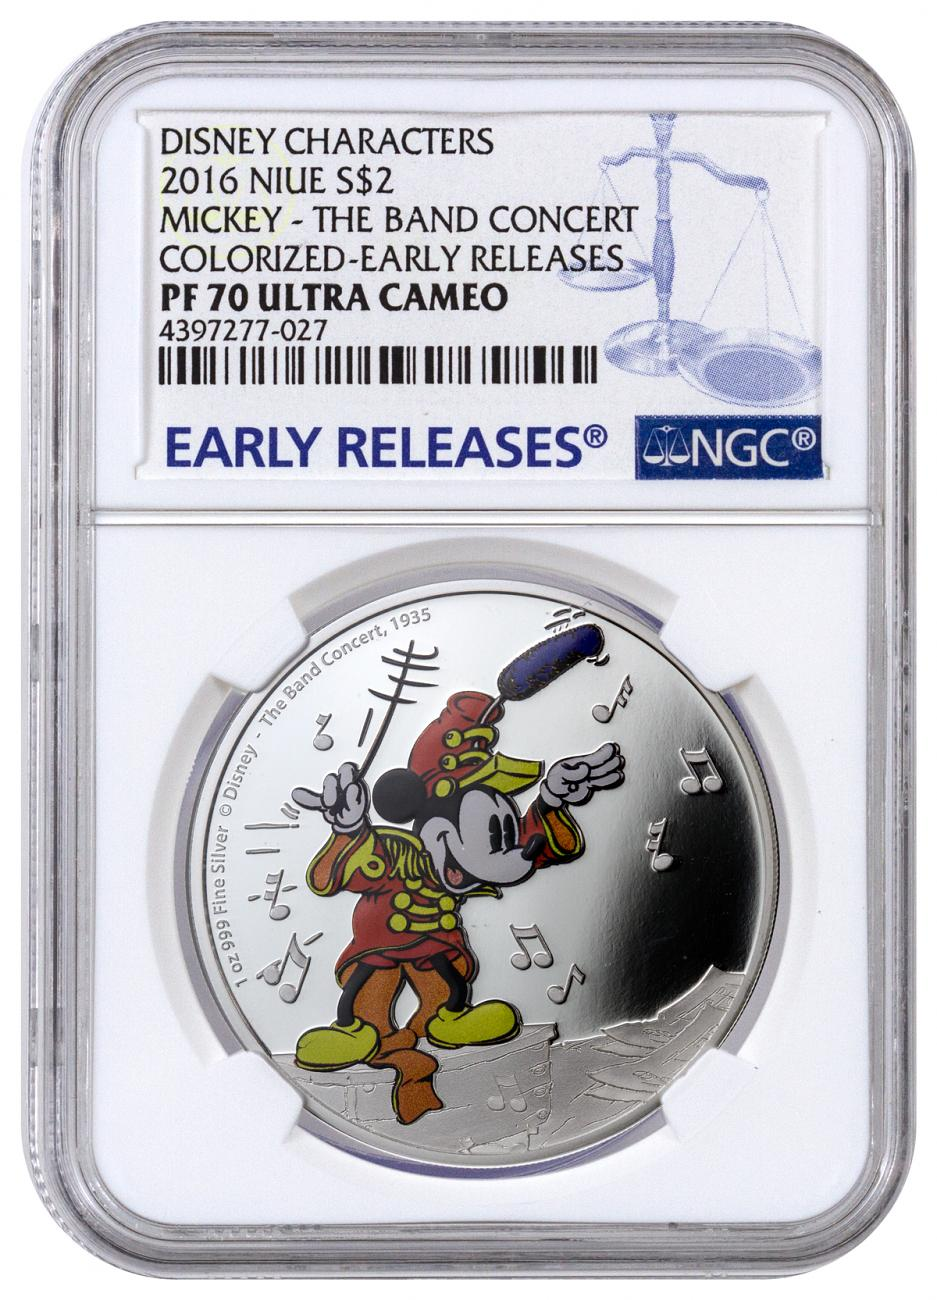 2016 Niue $2 1 oz. Colorized Proof Silver Disney - Mickey the Band Concert - NGC PF70 UC Early Releases